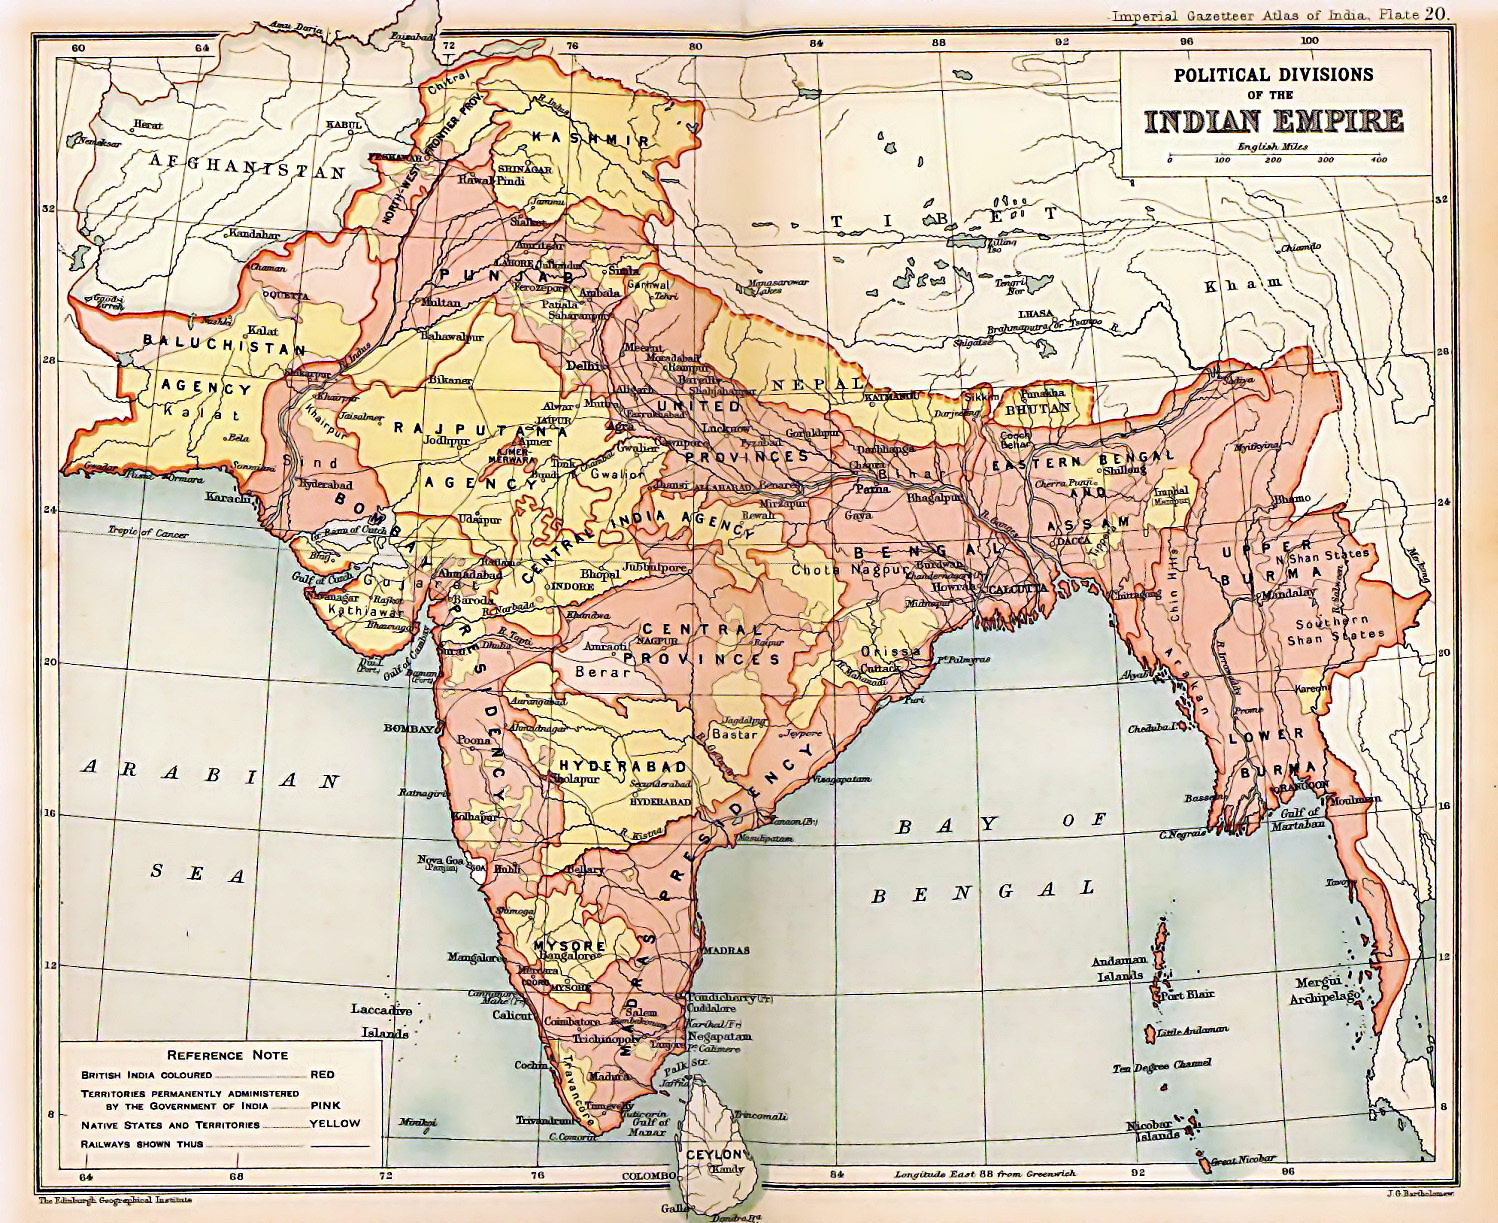 https://upload.wikimedia.org/wikipedia/commons/3/36/British_Indian_Empire_1909_Imperial_Gazetteer_of_India.jpg